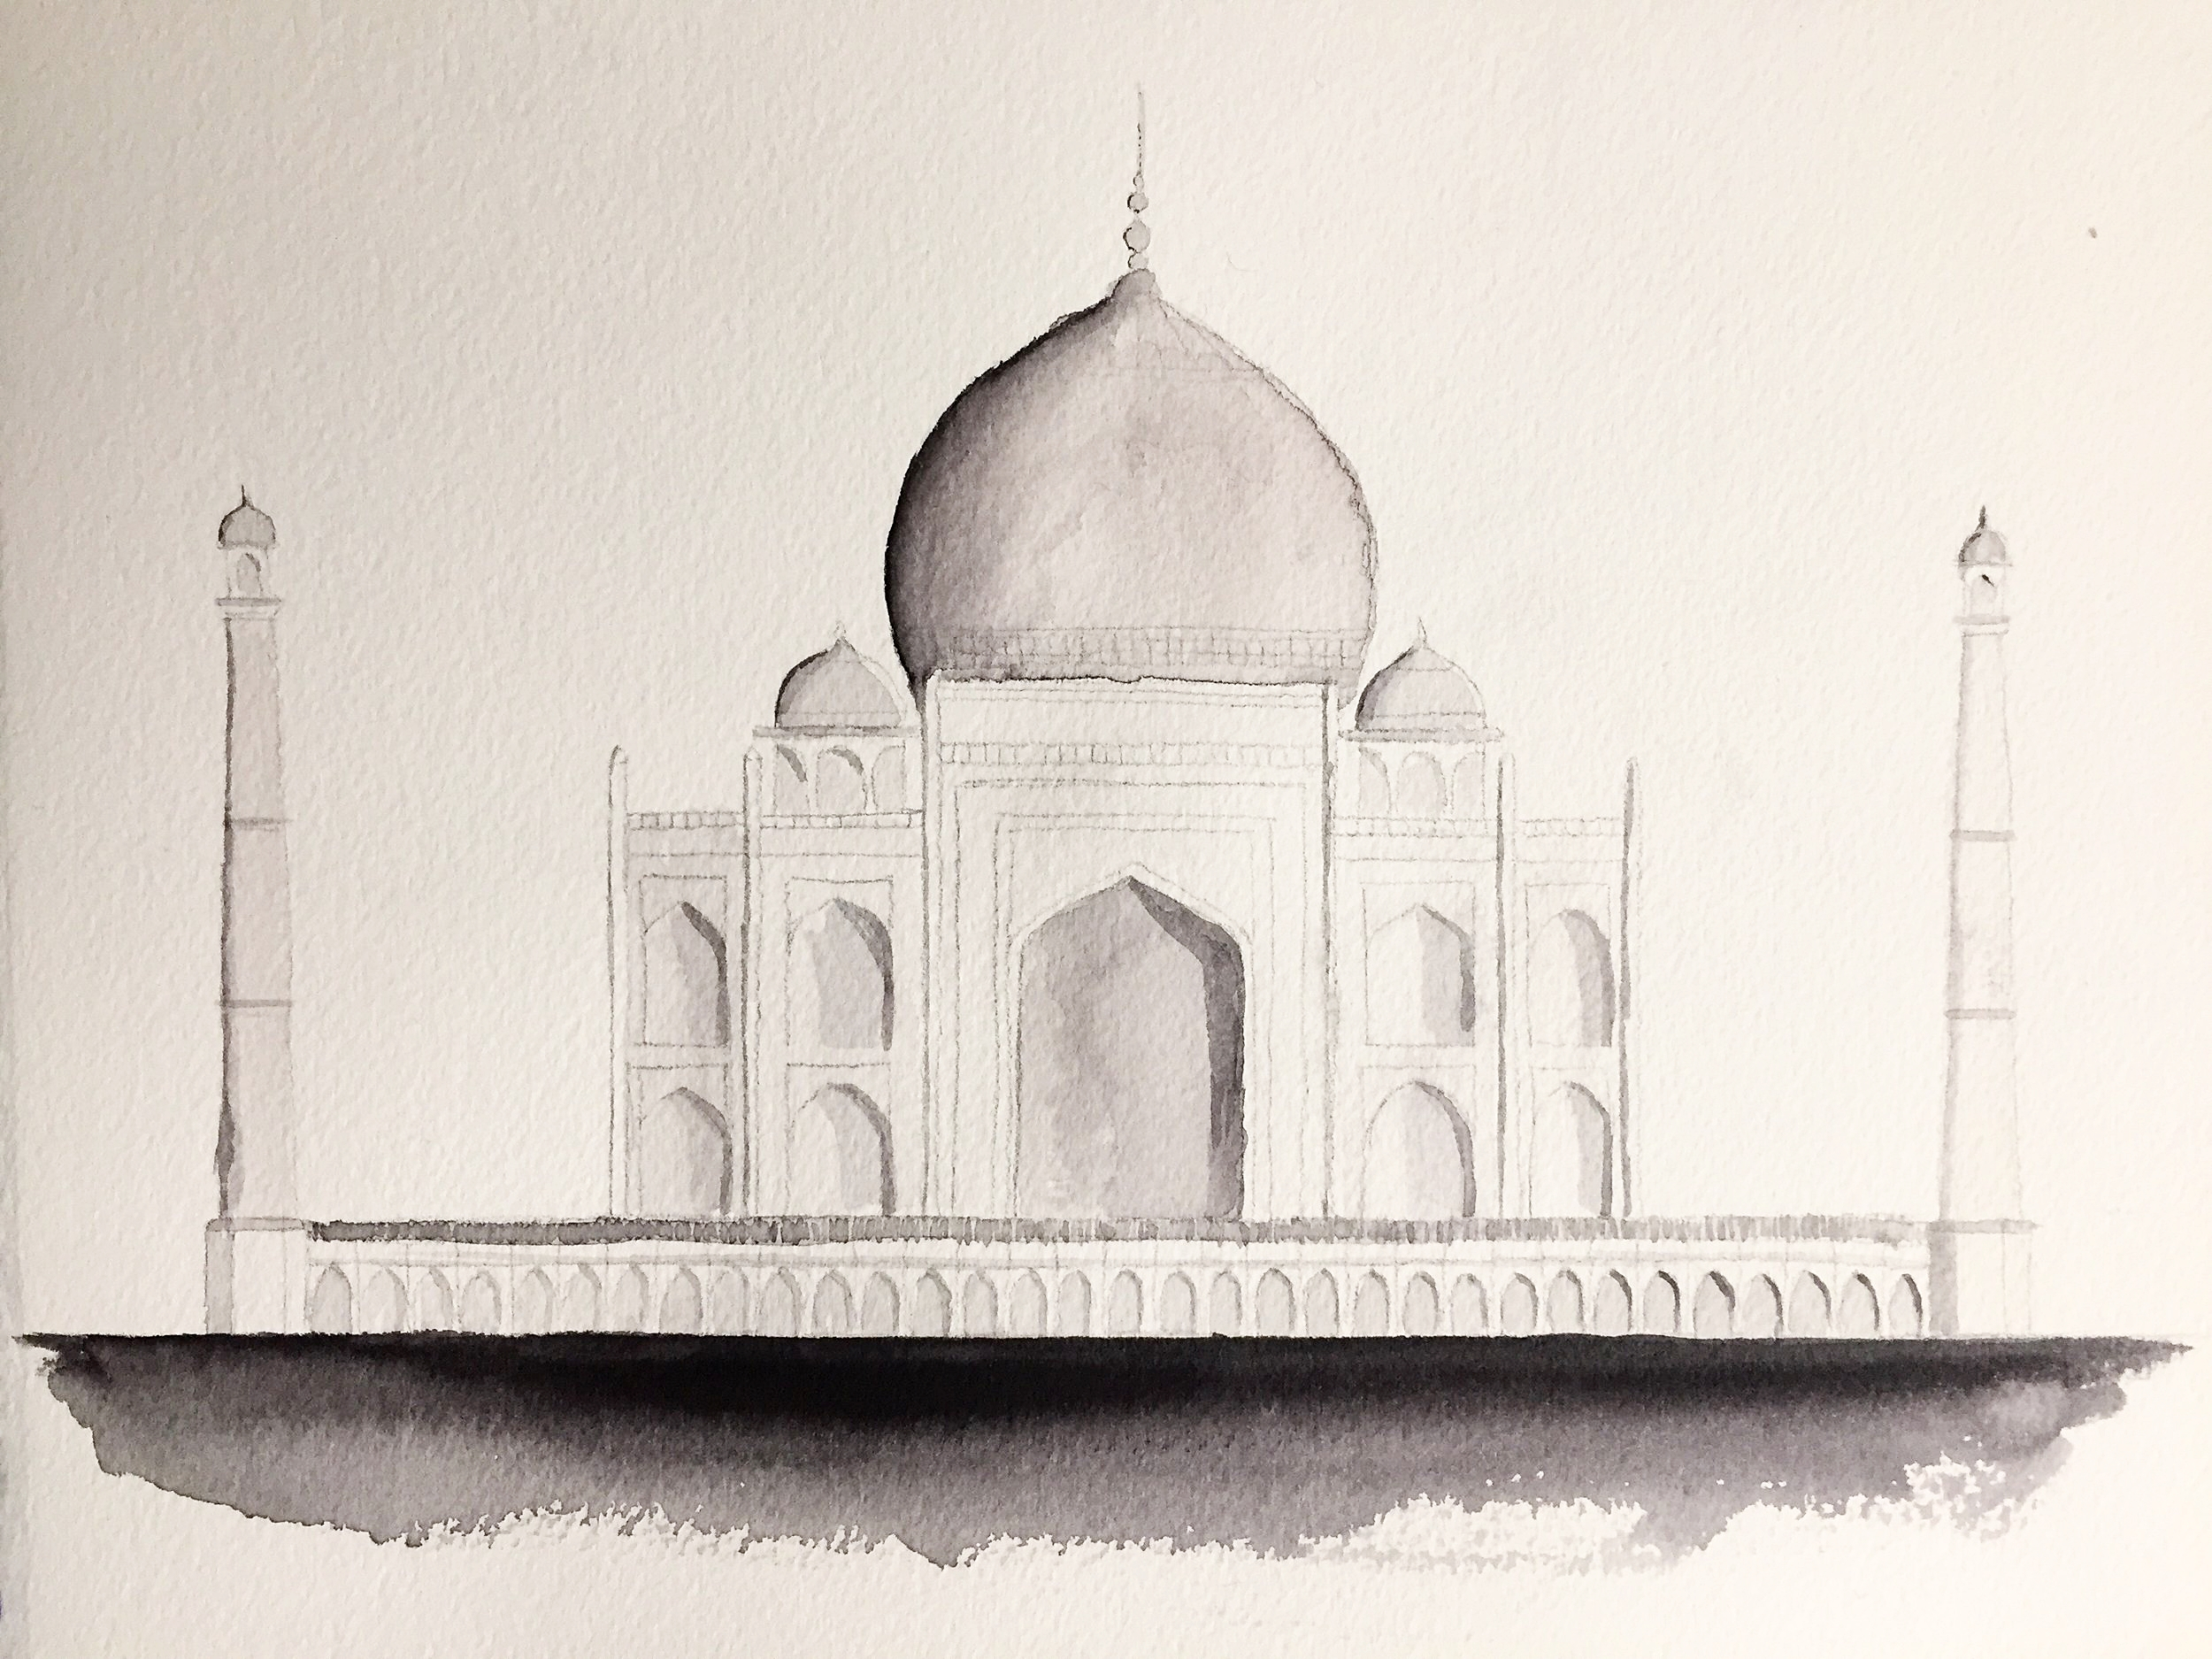 Elevation of the Taj Mahal. Watercolor on Arches paper.